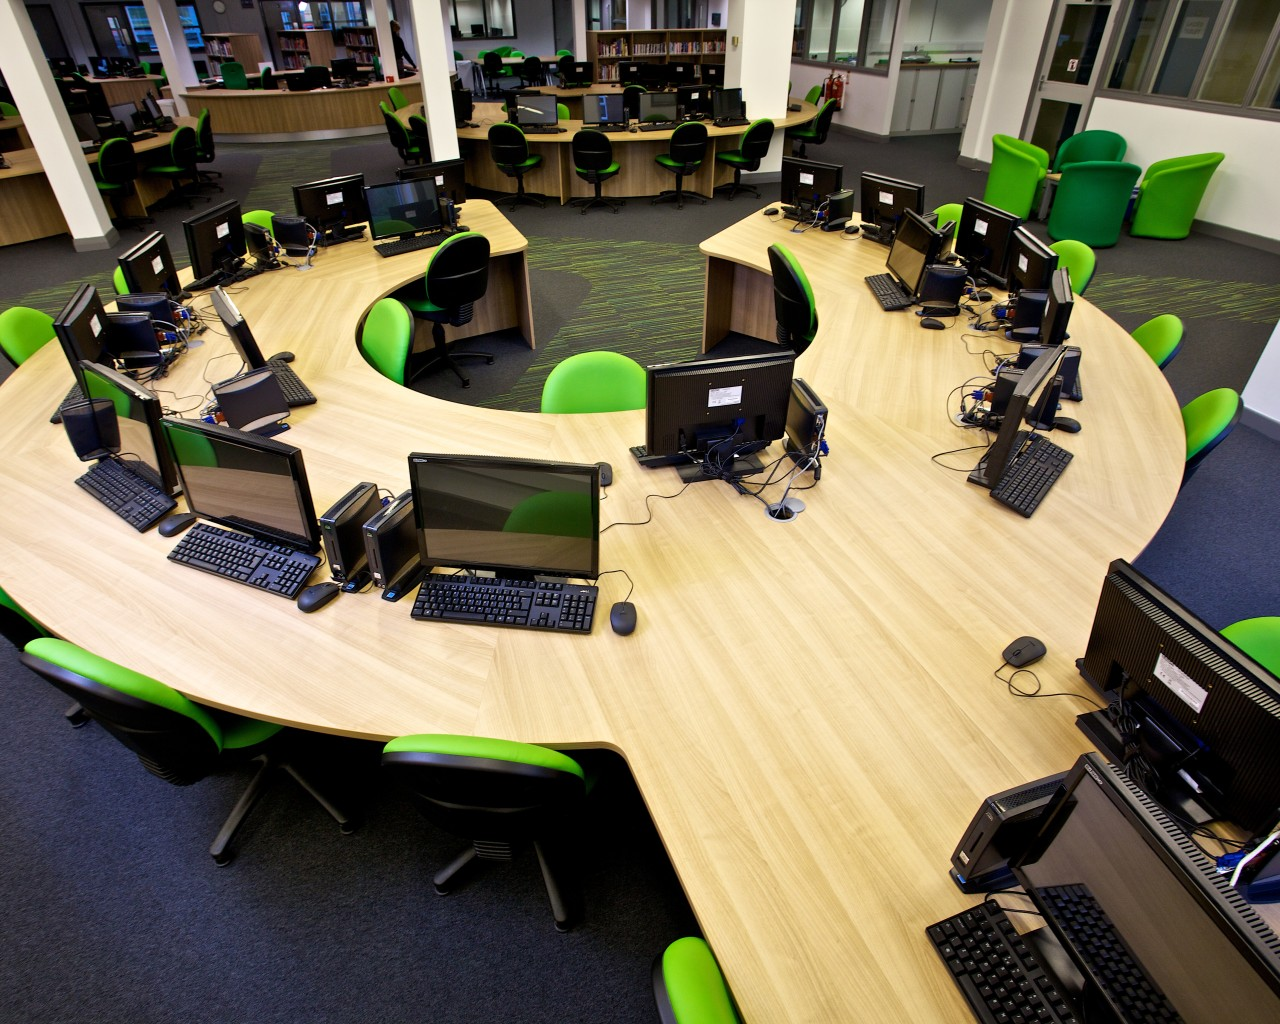 Office space planning interior design bolton manchester for Office space planner online